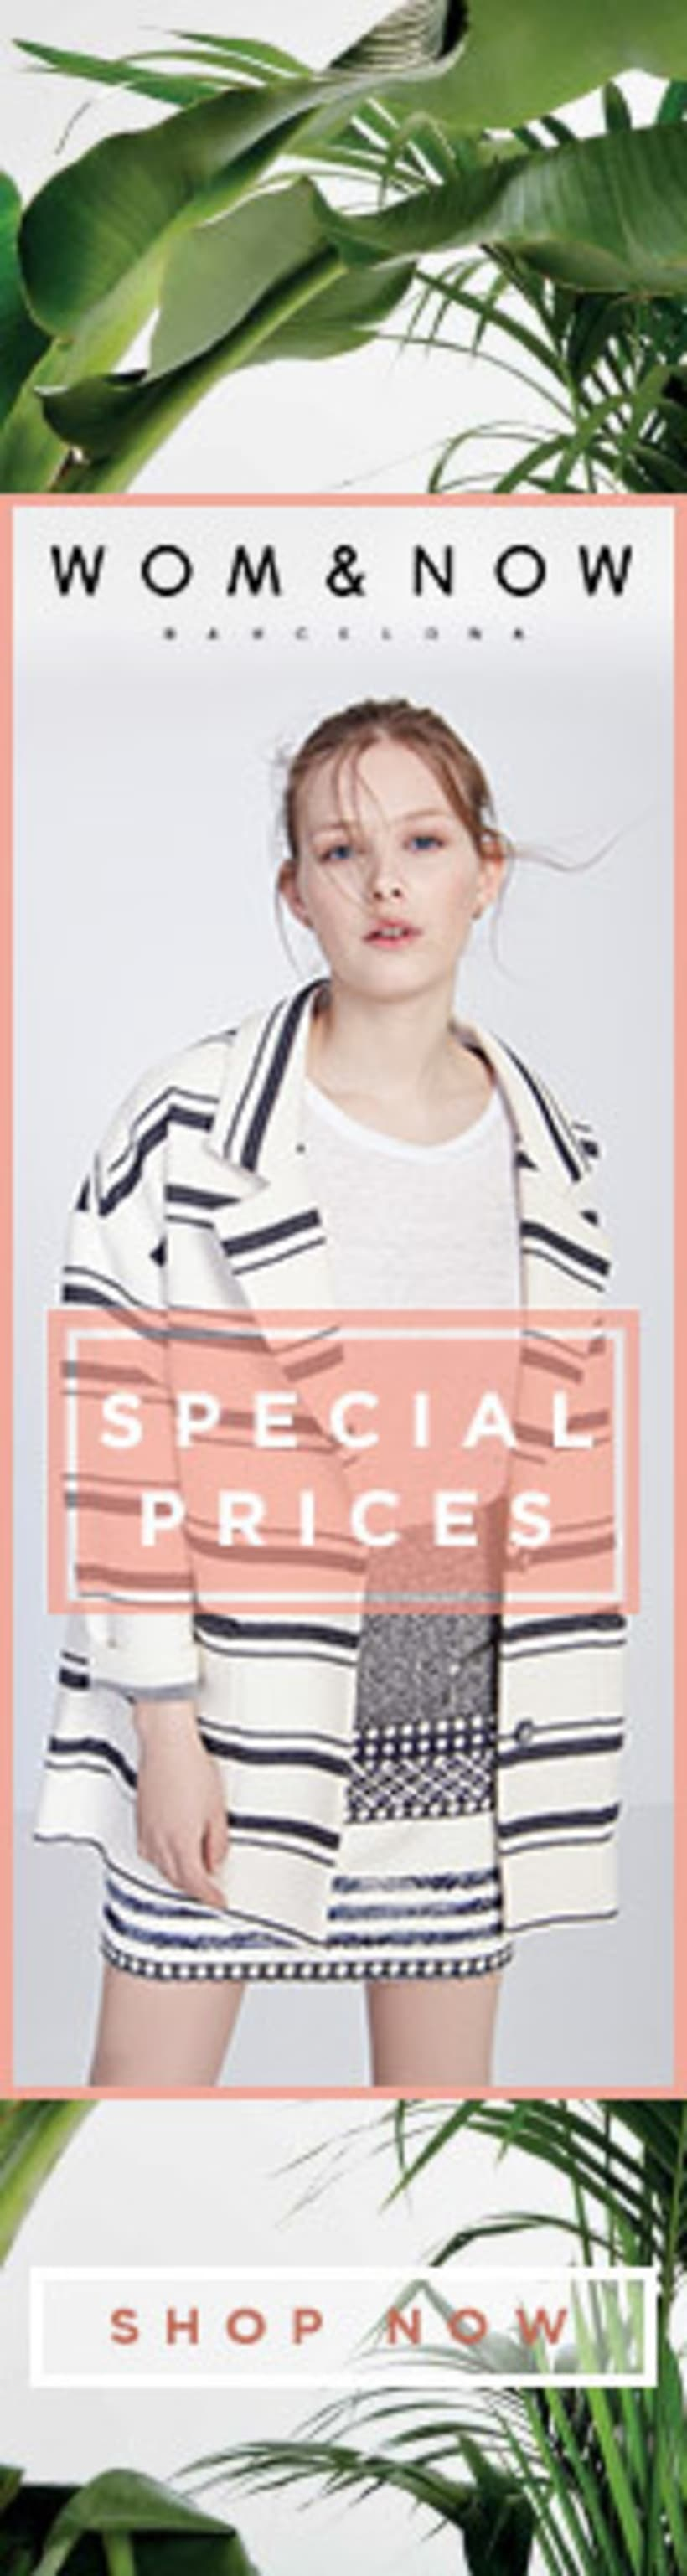 Special Prices banners for Wom&Now 3